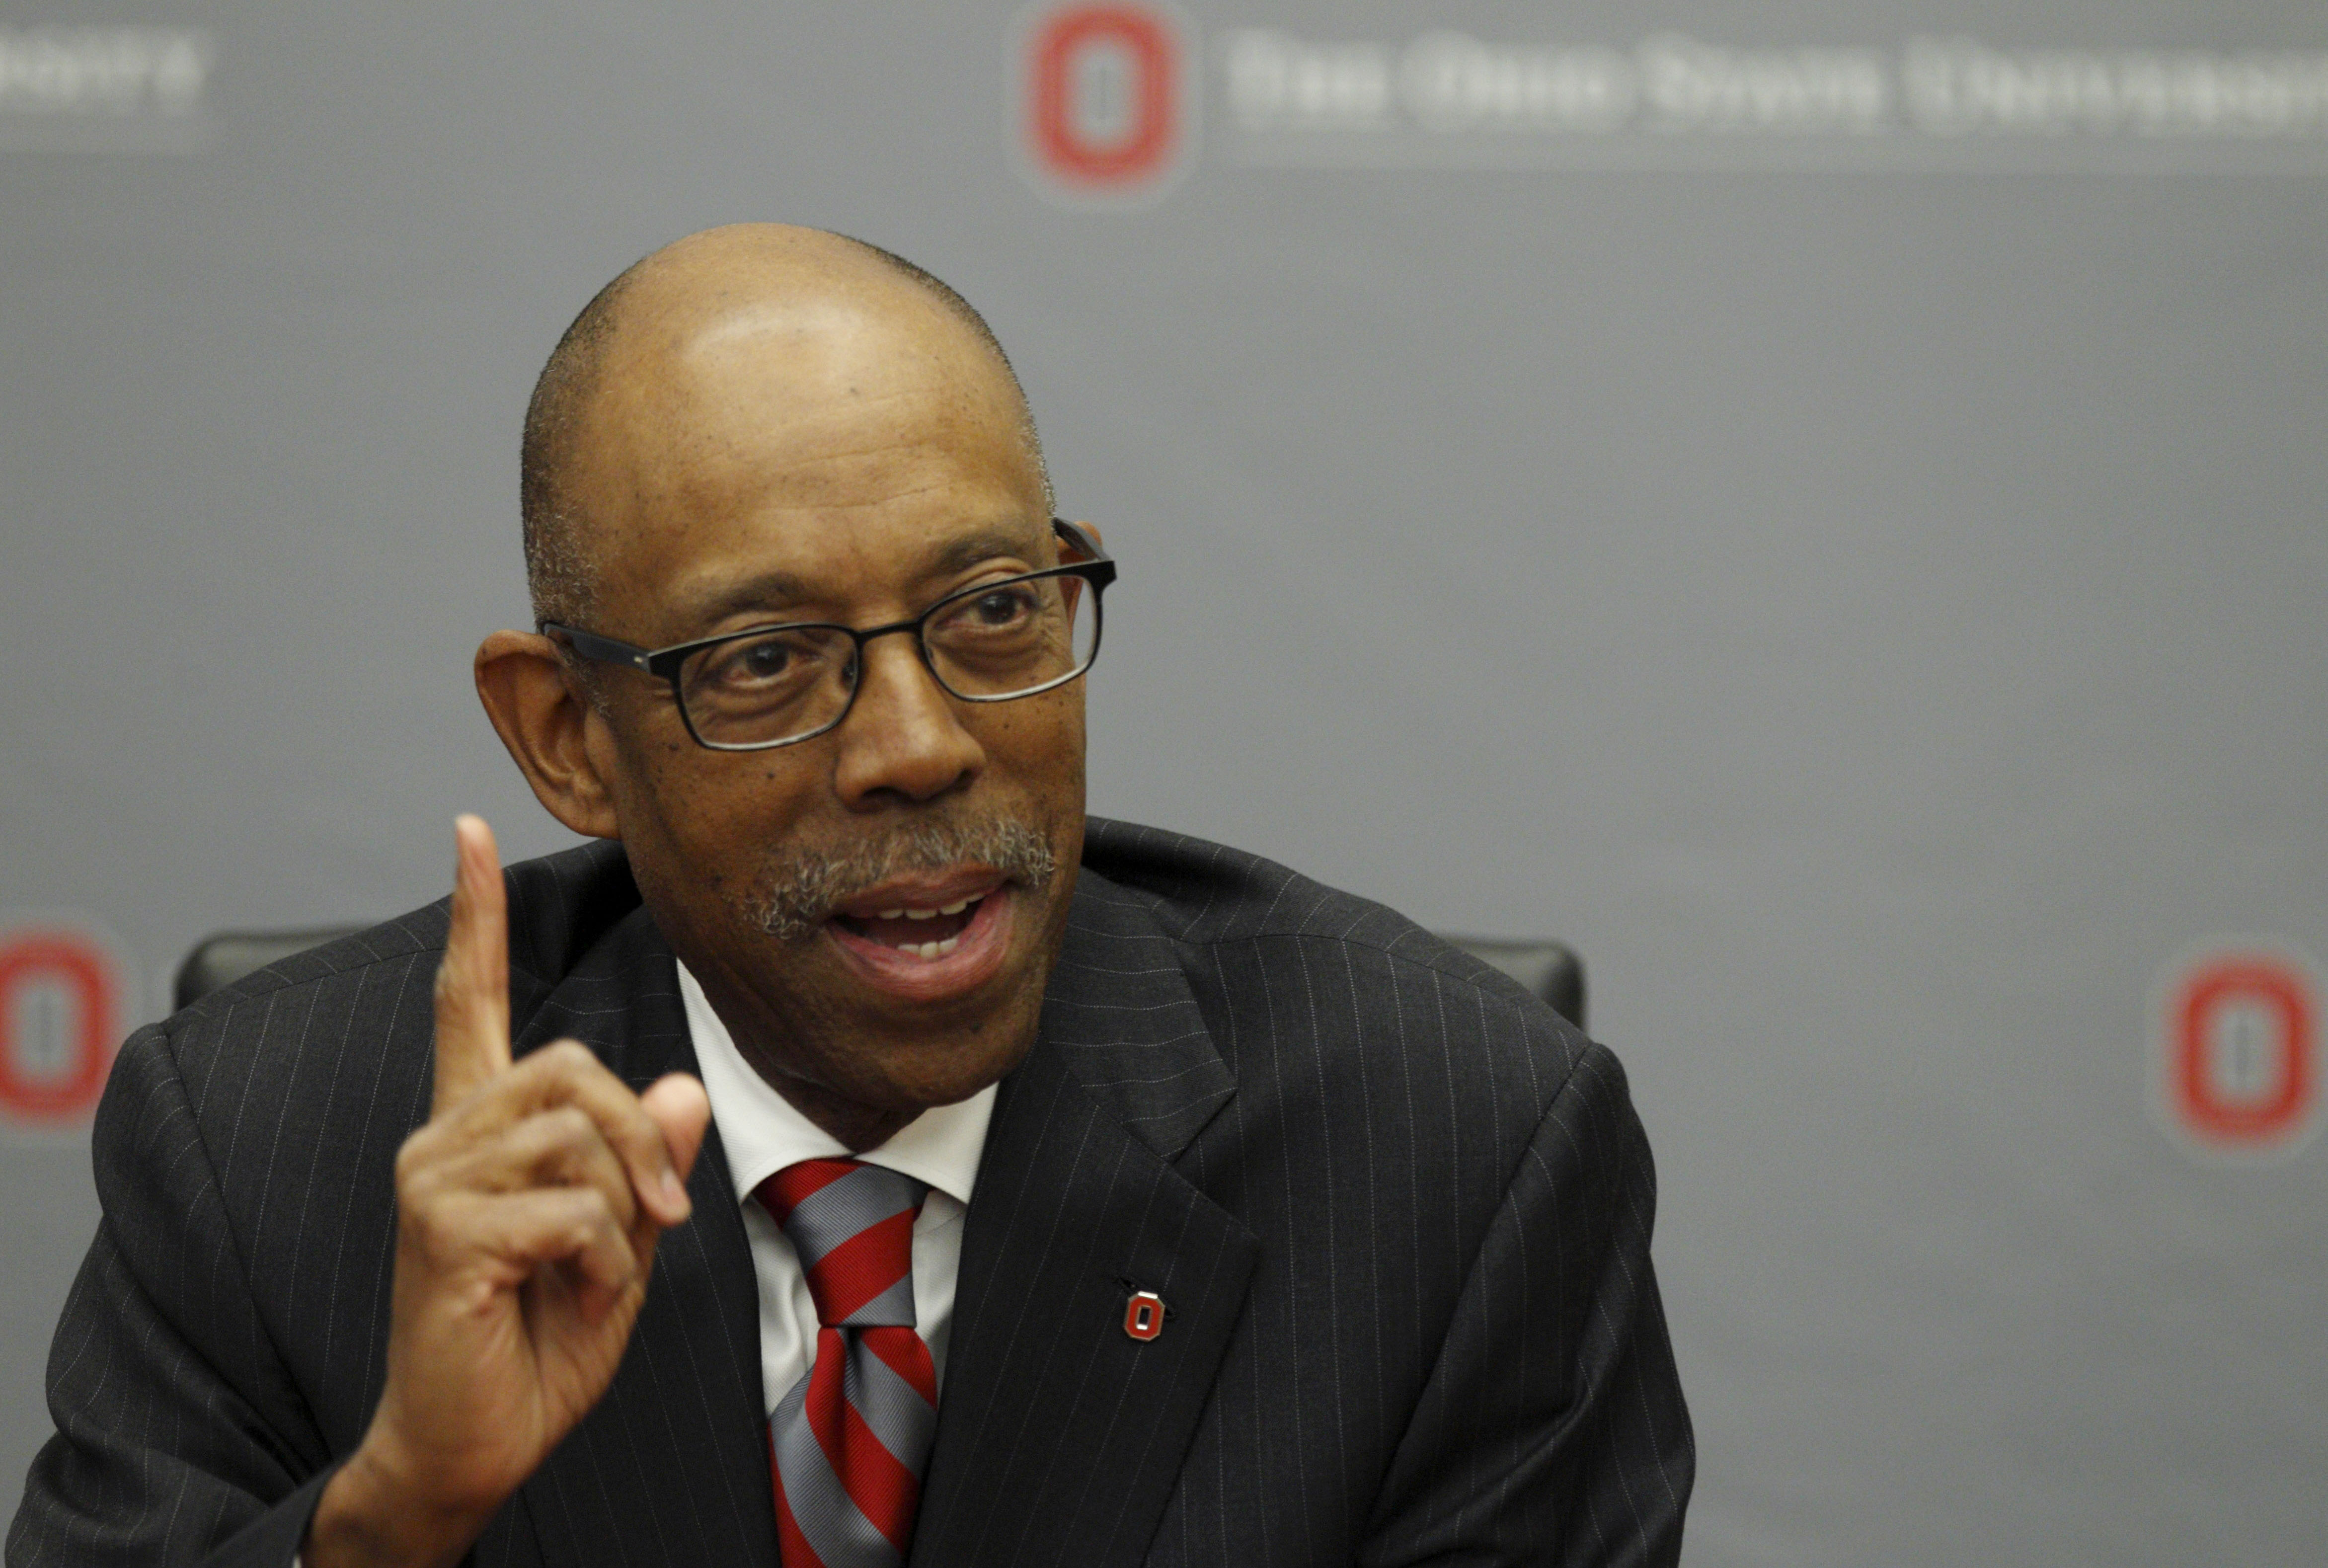 Ohio State trustees extend president's contract by 2 years ...